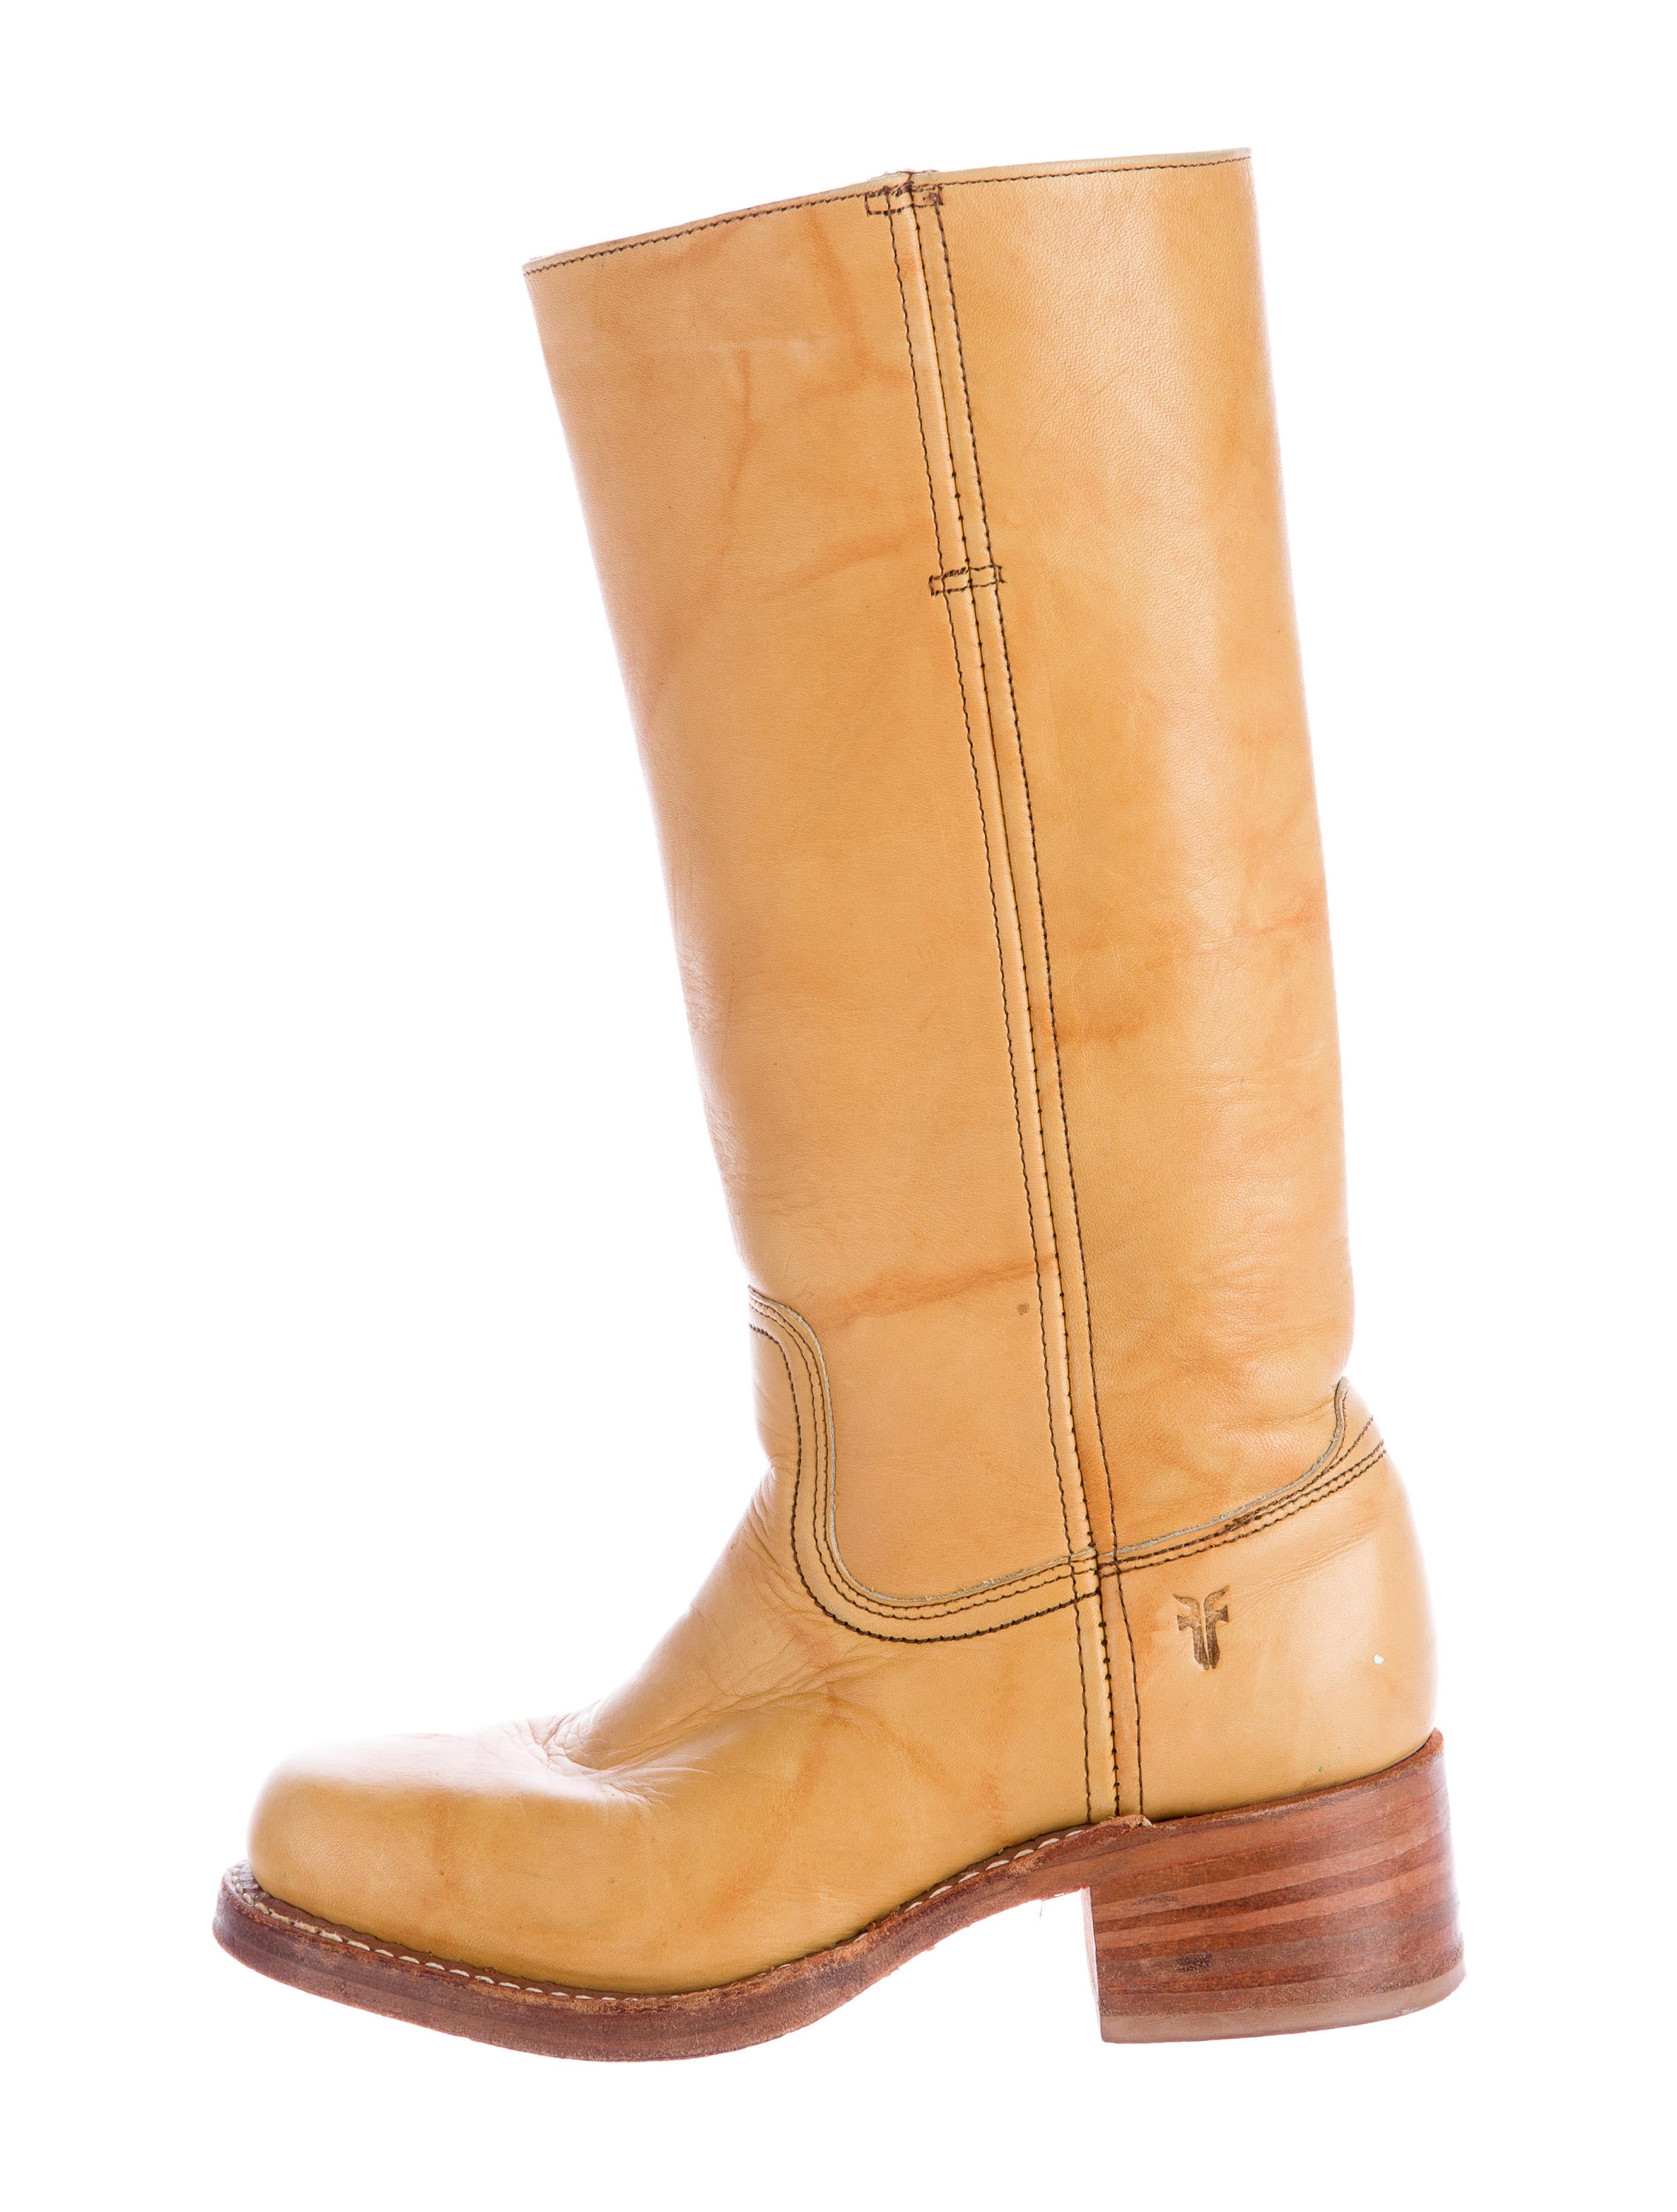 frye square toe leather boots shoes wf820823 the